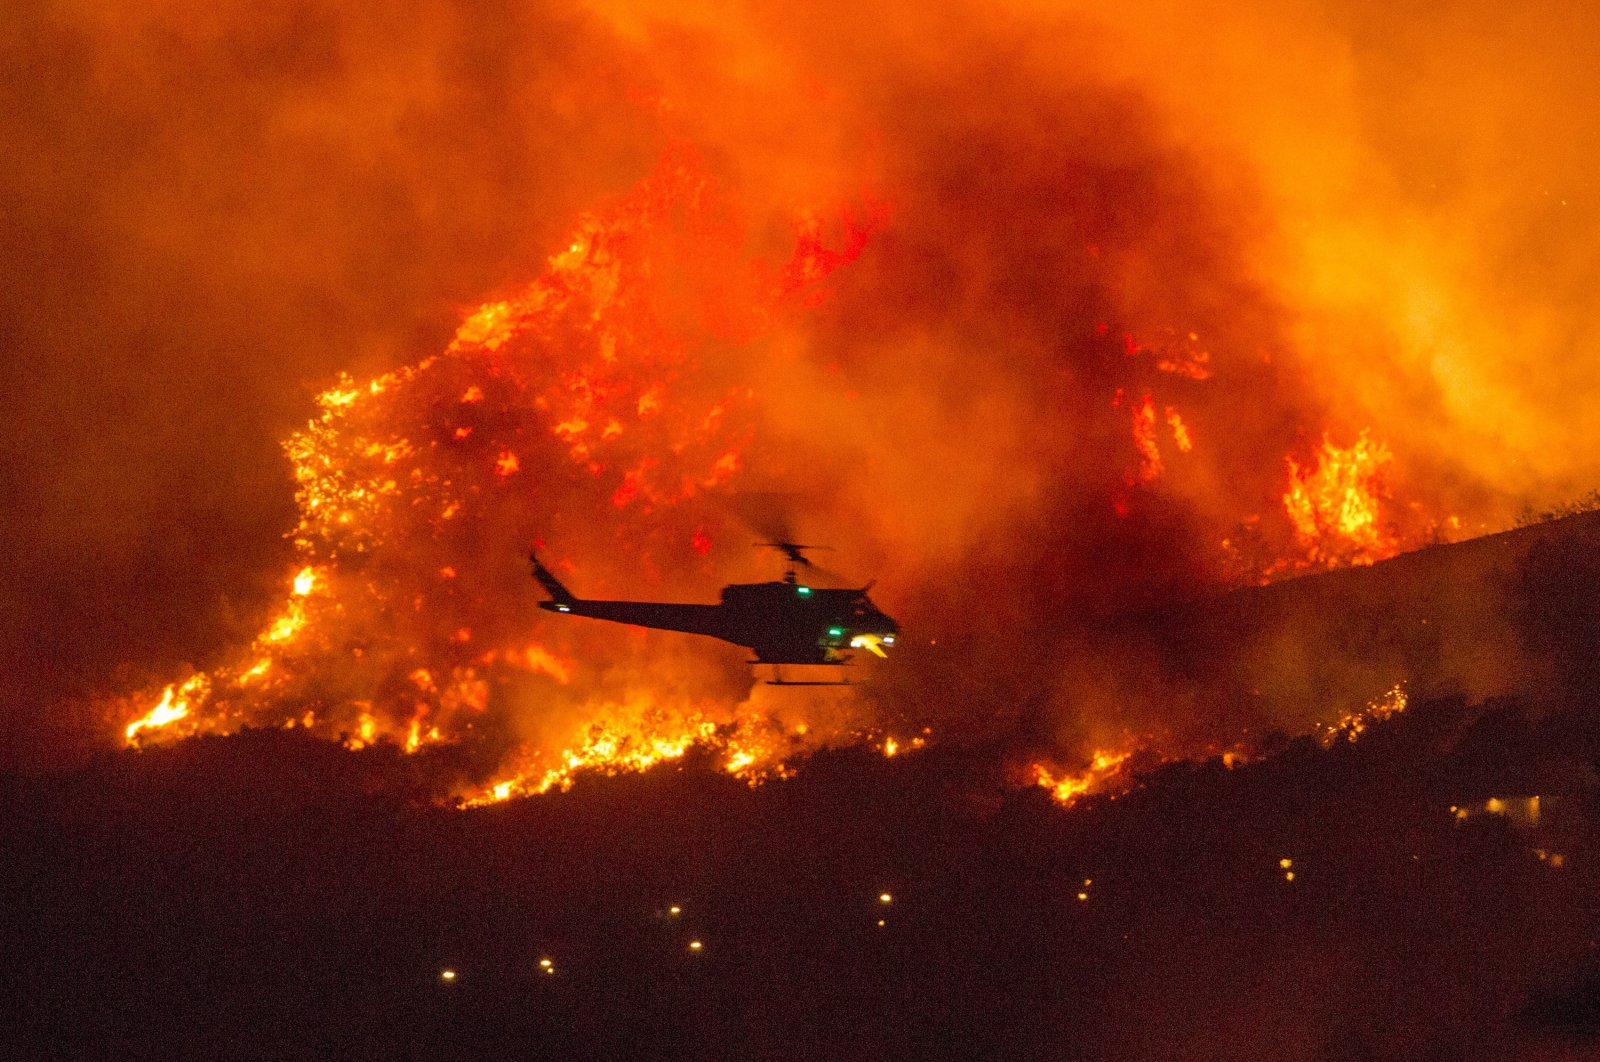 A helicopter prepares to drop water on a wildfire in Yucaipa, California, U.S., Sept. 5, 2020. (AP Photo)